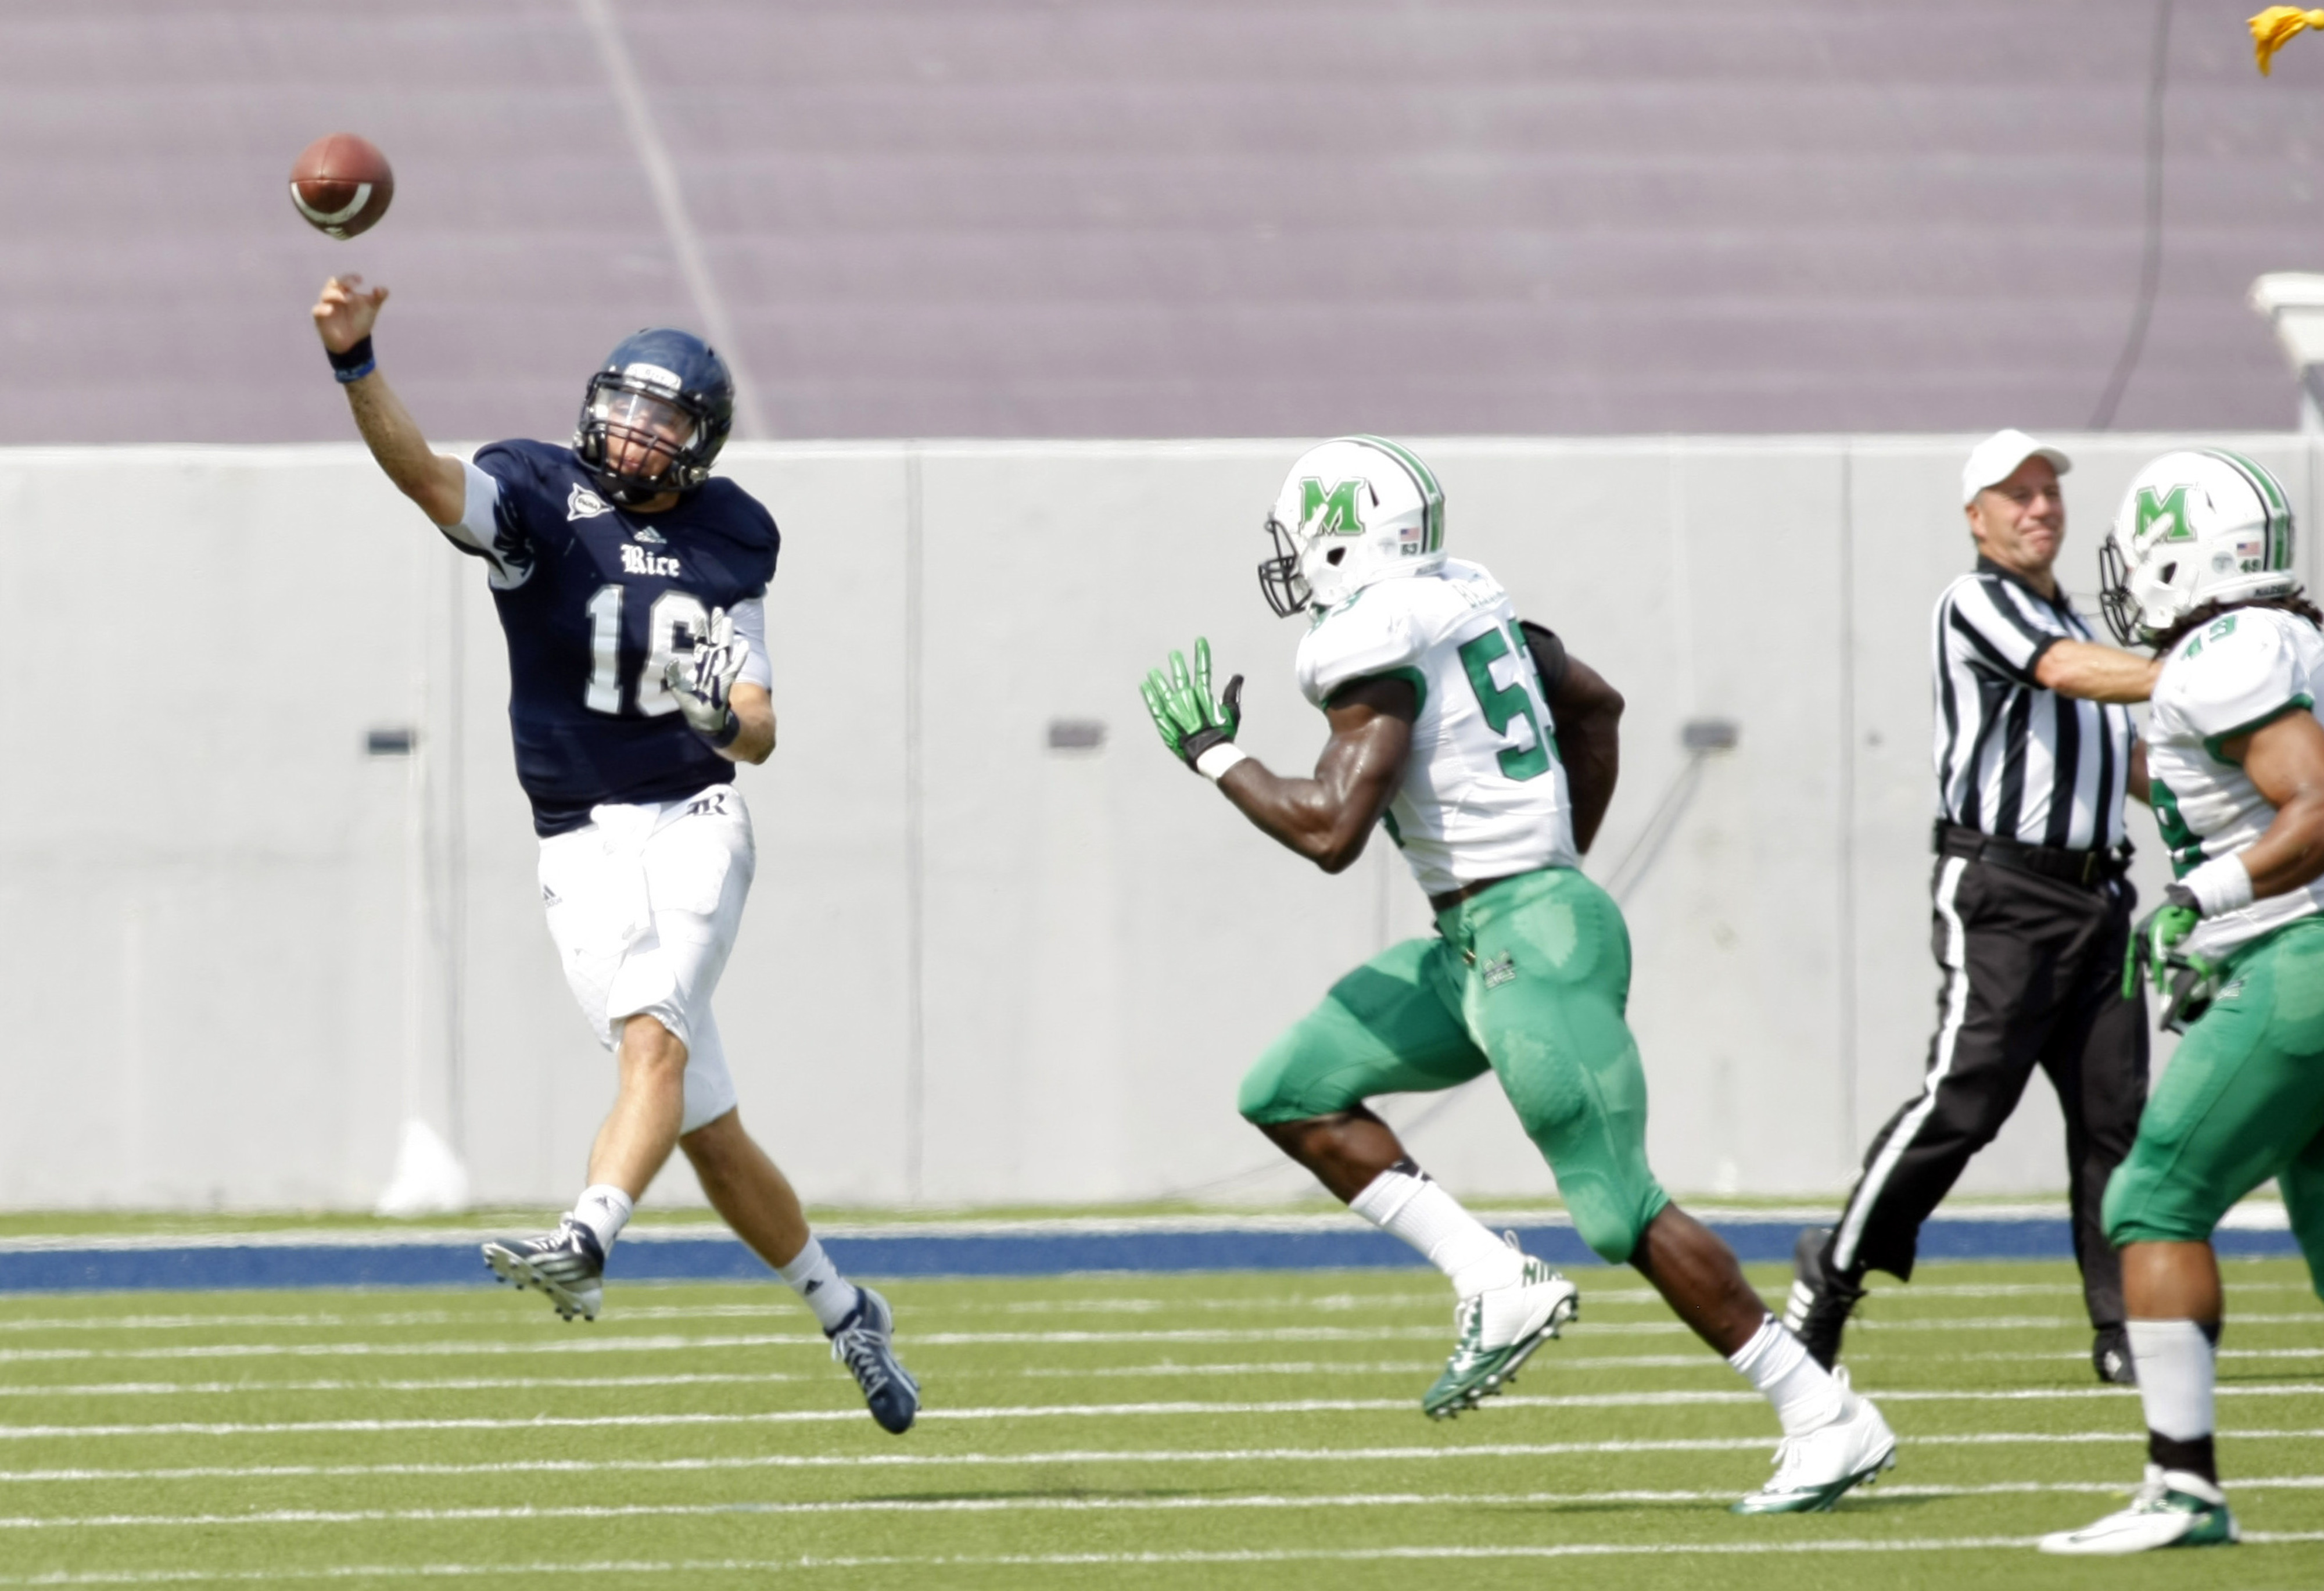 Sep 22, 2012; College Station, TX, USA; Rice Owls quarterback Taylor McHargue (16) throws a pass against the Marshall Thundering Herd in the first quarter at Rice Stadium. Mandatory Credit: Brett Davis-US PRESSWIRE